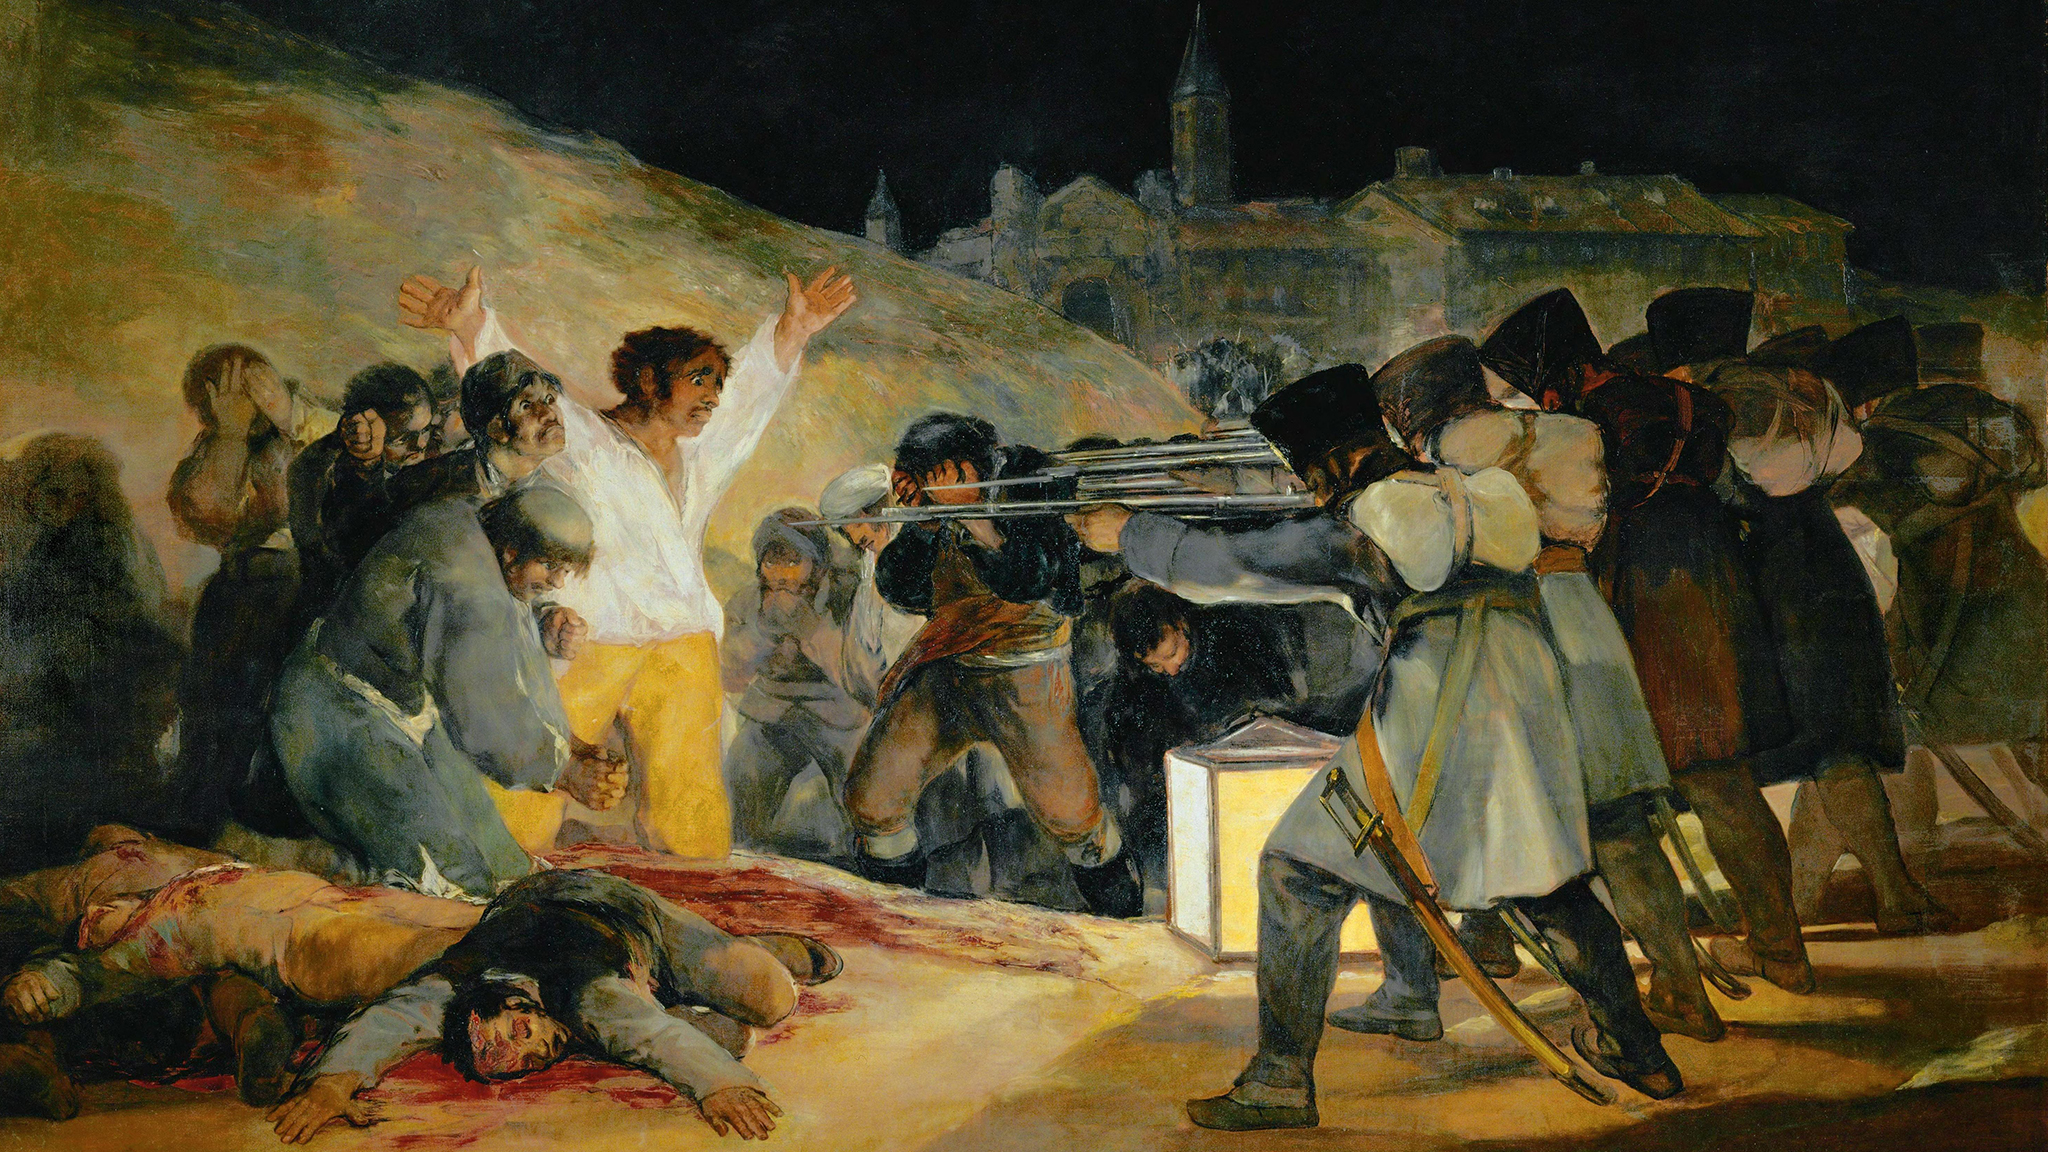 an overview of the infamous artists goya monet and picasso Van gogh failure in the realm of art there have been numerous accounts of infamous artists who have stood out in their art period, such as goya, monet and picasso.